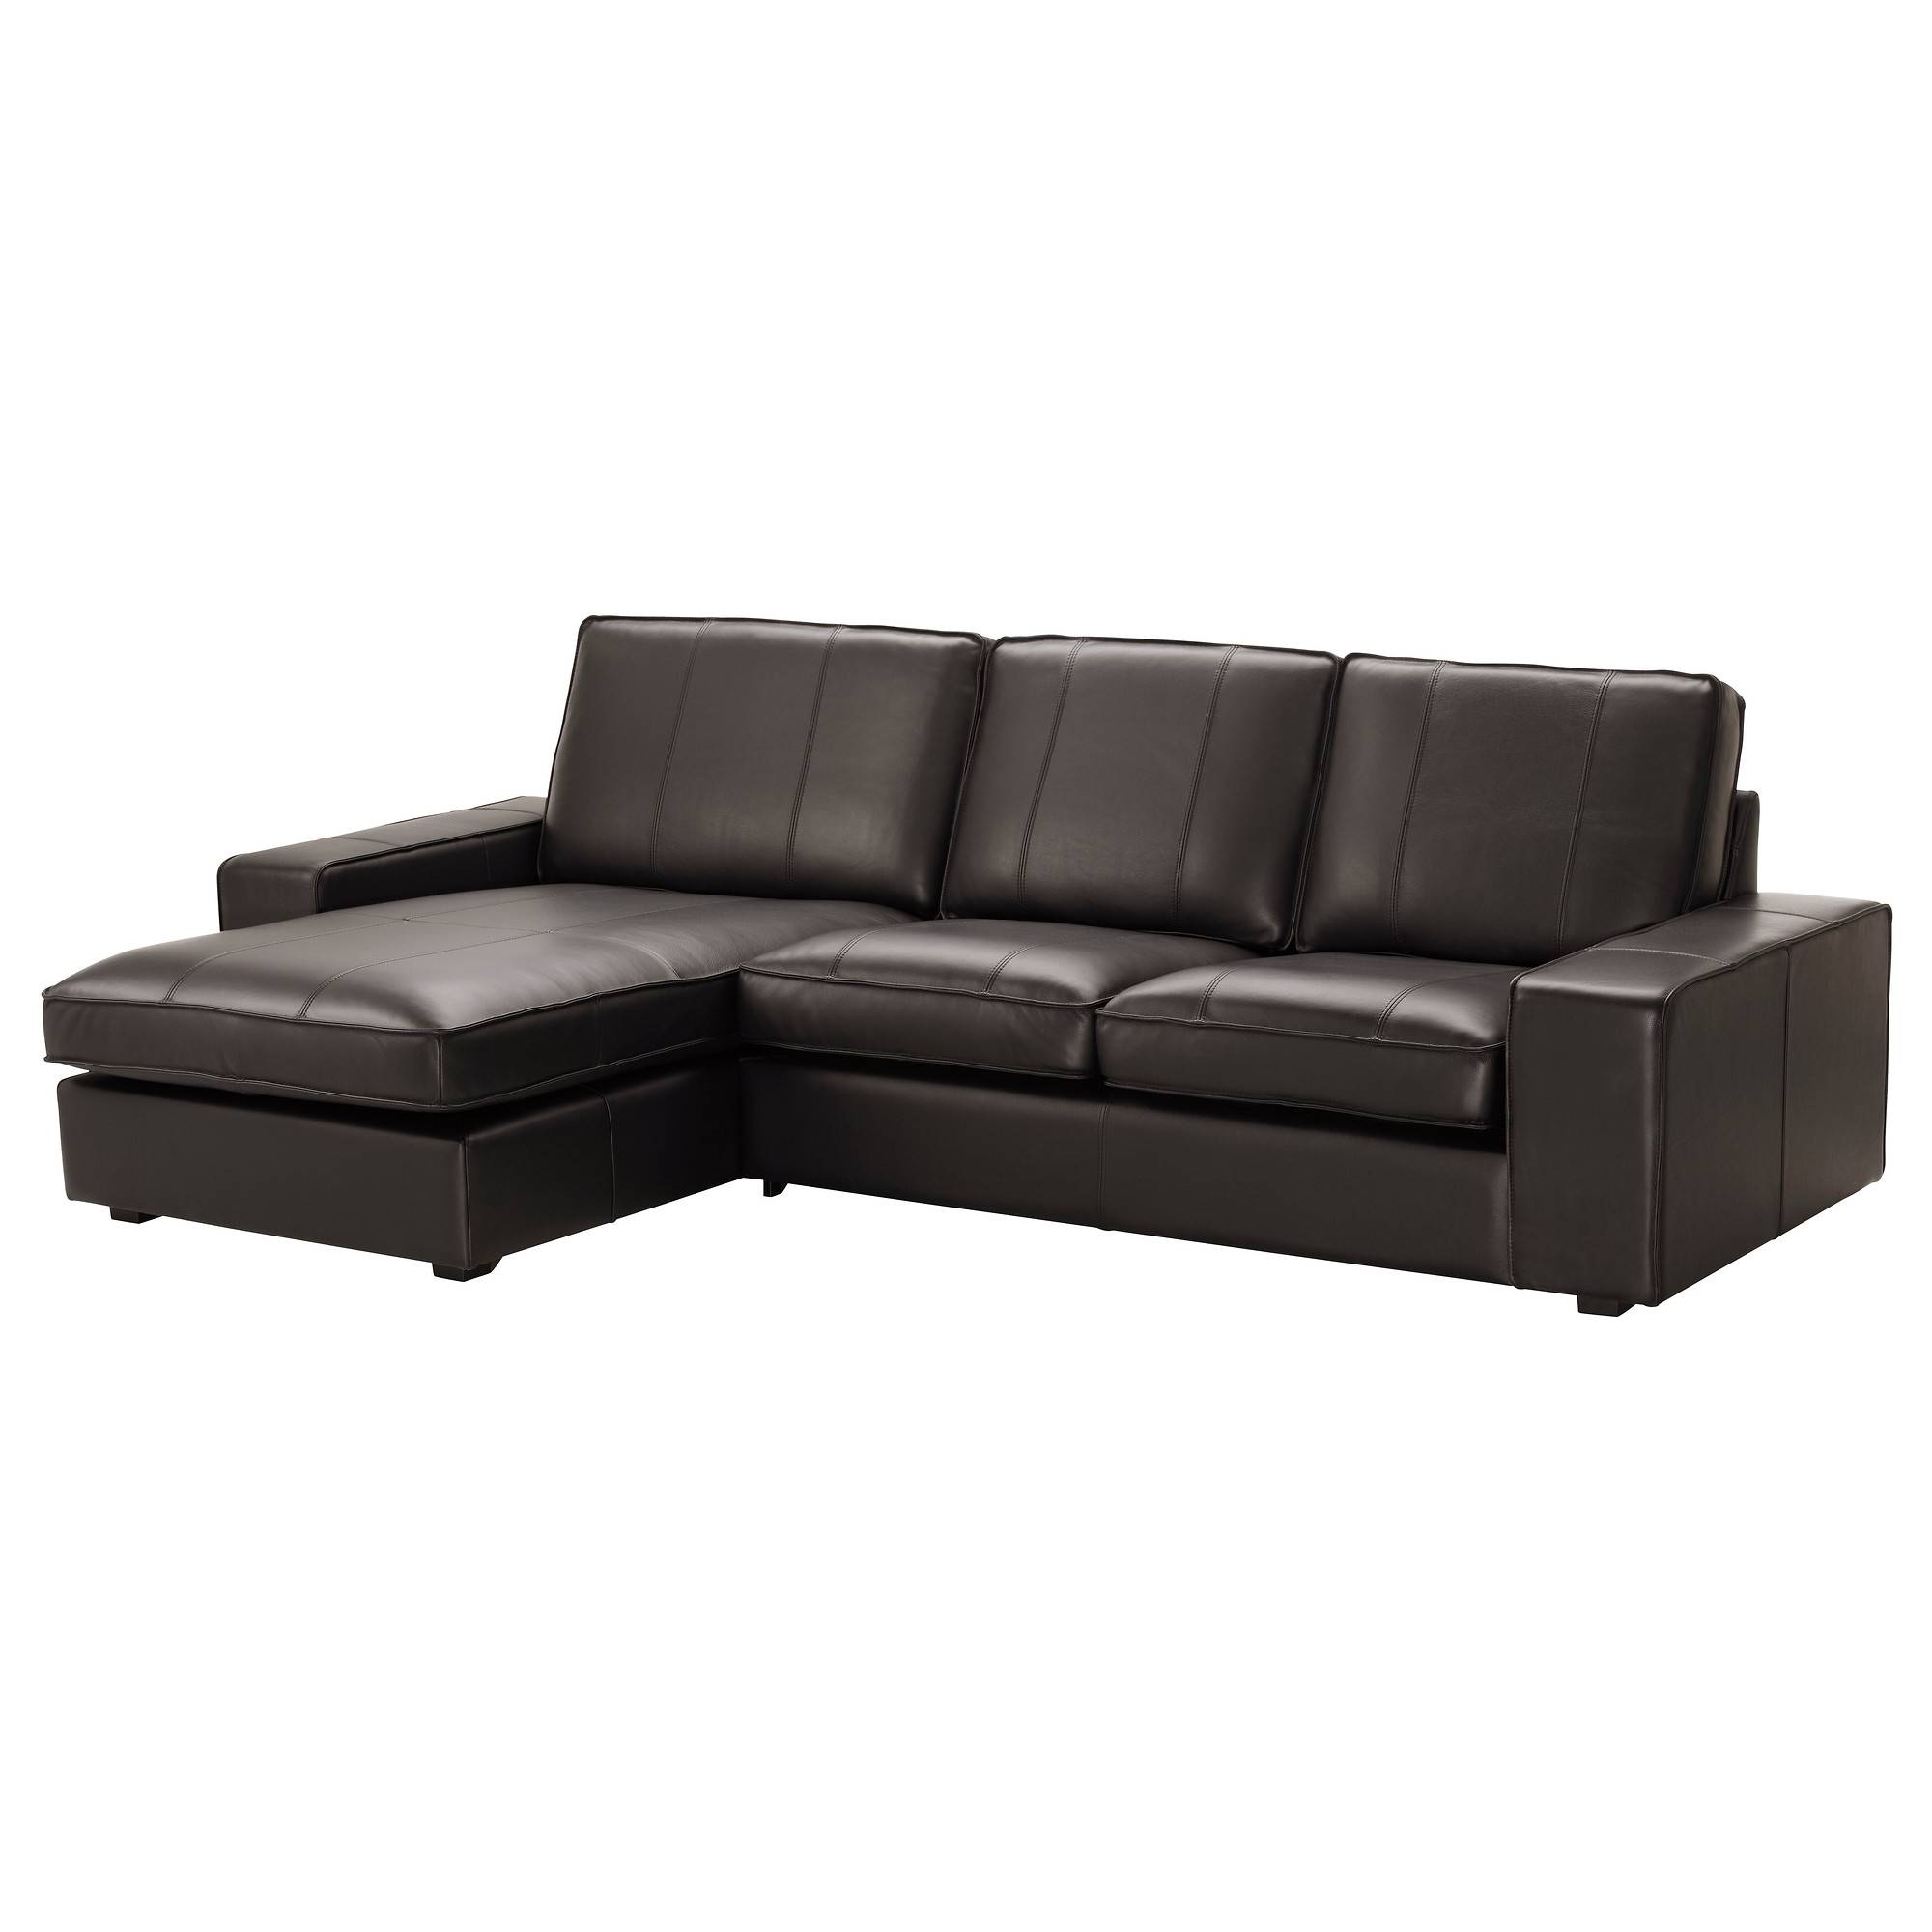 Small Sofa & 2 Seater Sofa | Ikea with Ikea Two Seater Sofas (Image 22 of 30)